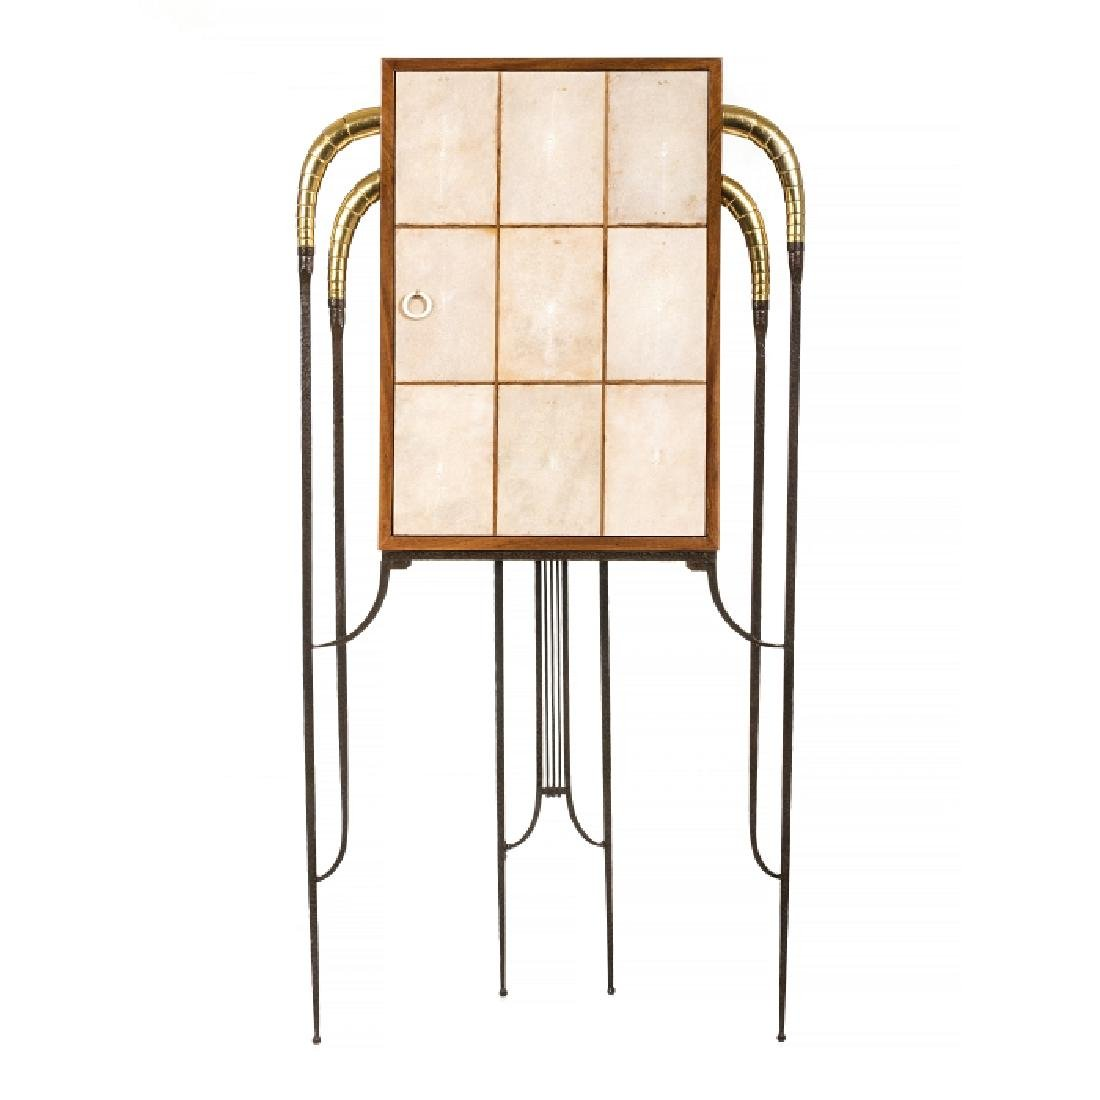 Style of MARC DU PLANTIER - Wrought Iron Galuchat Bar